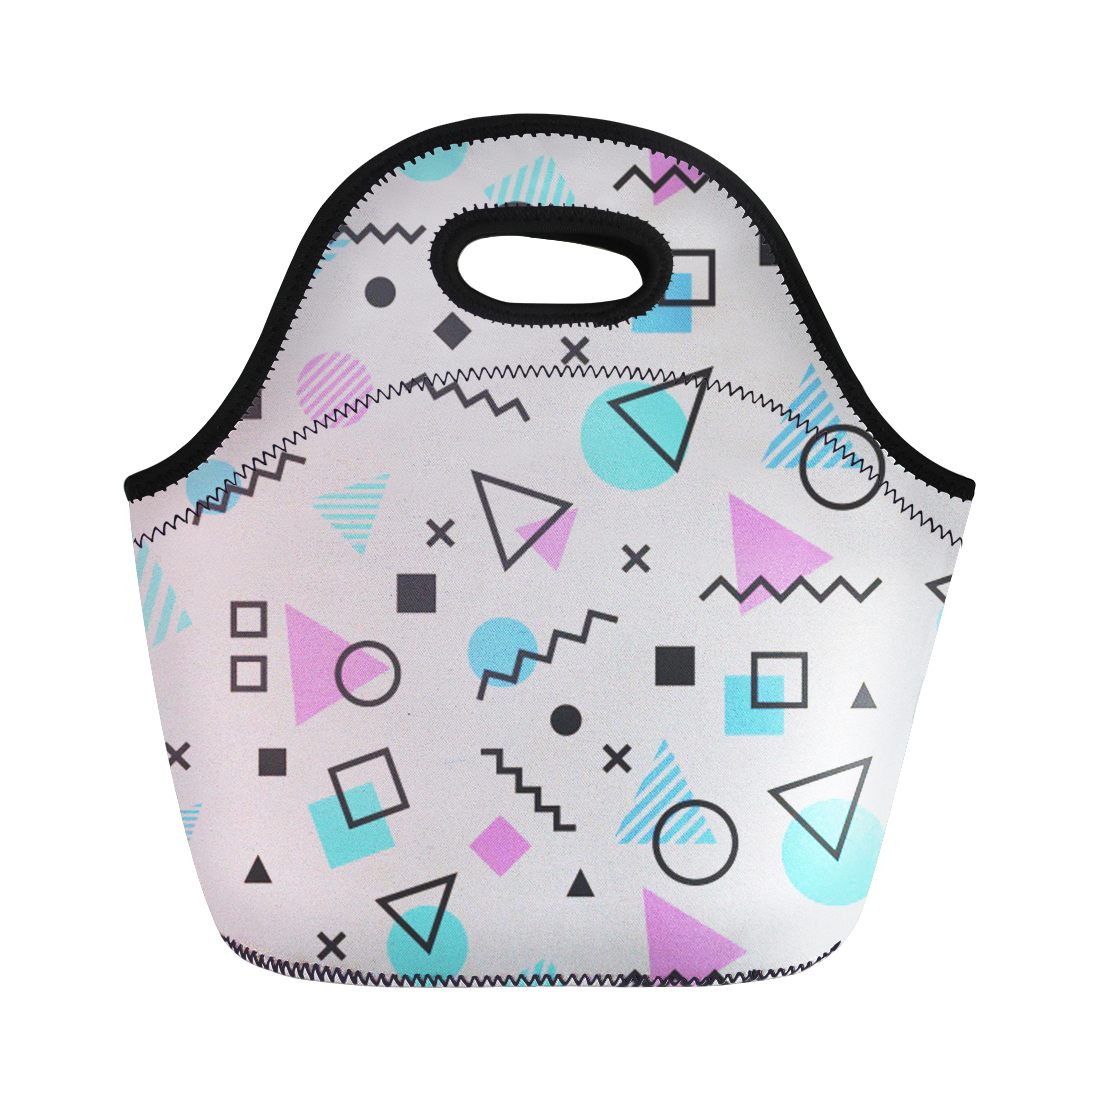 FORUDESIGNS Cartoon Skull Insulated Cotton Linen Lunch Bag Thermal Food Picnic Handbag for Women Kids Cooler Lunch Box Bag Tote